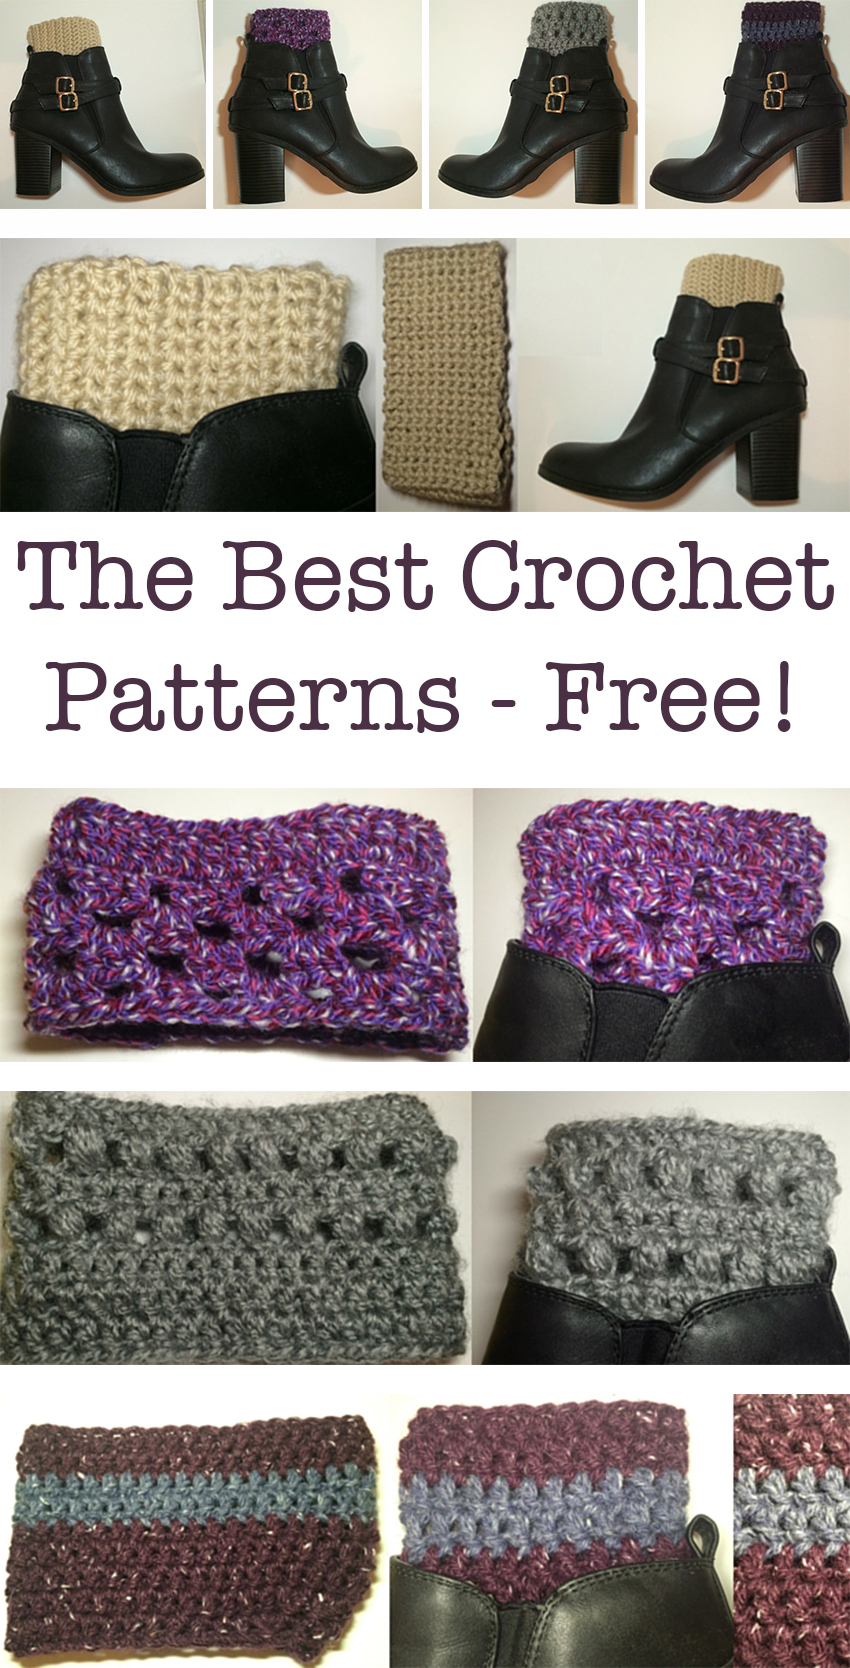 Free Crochet Book Cuff Patterns